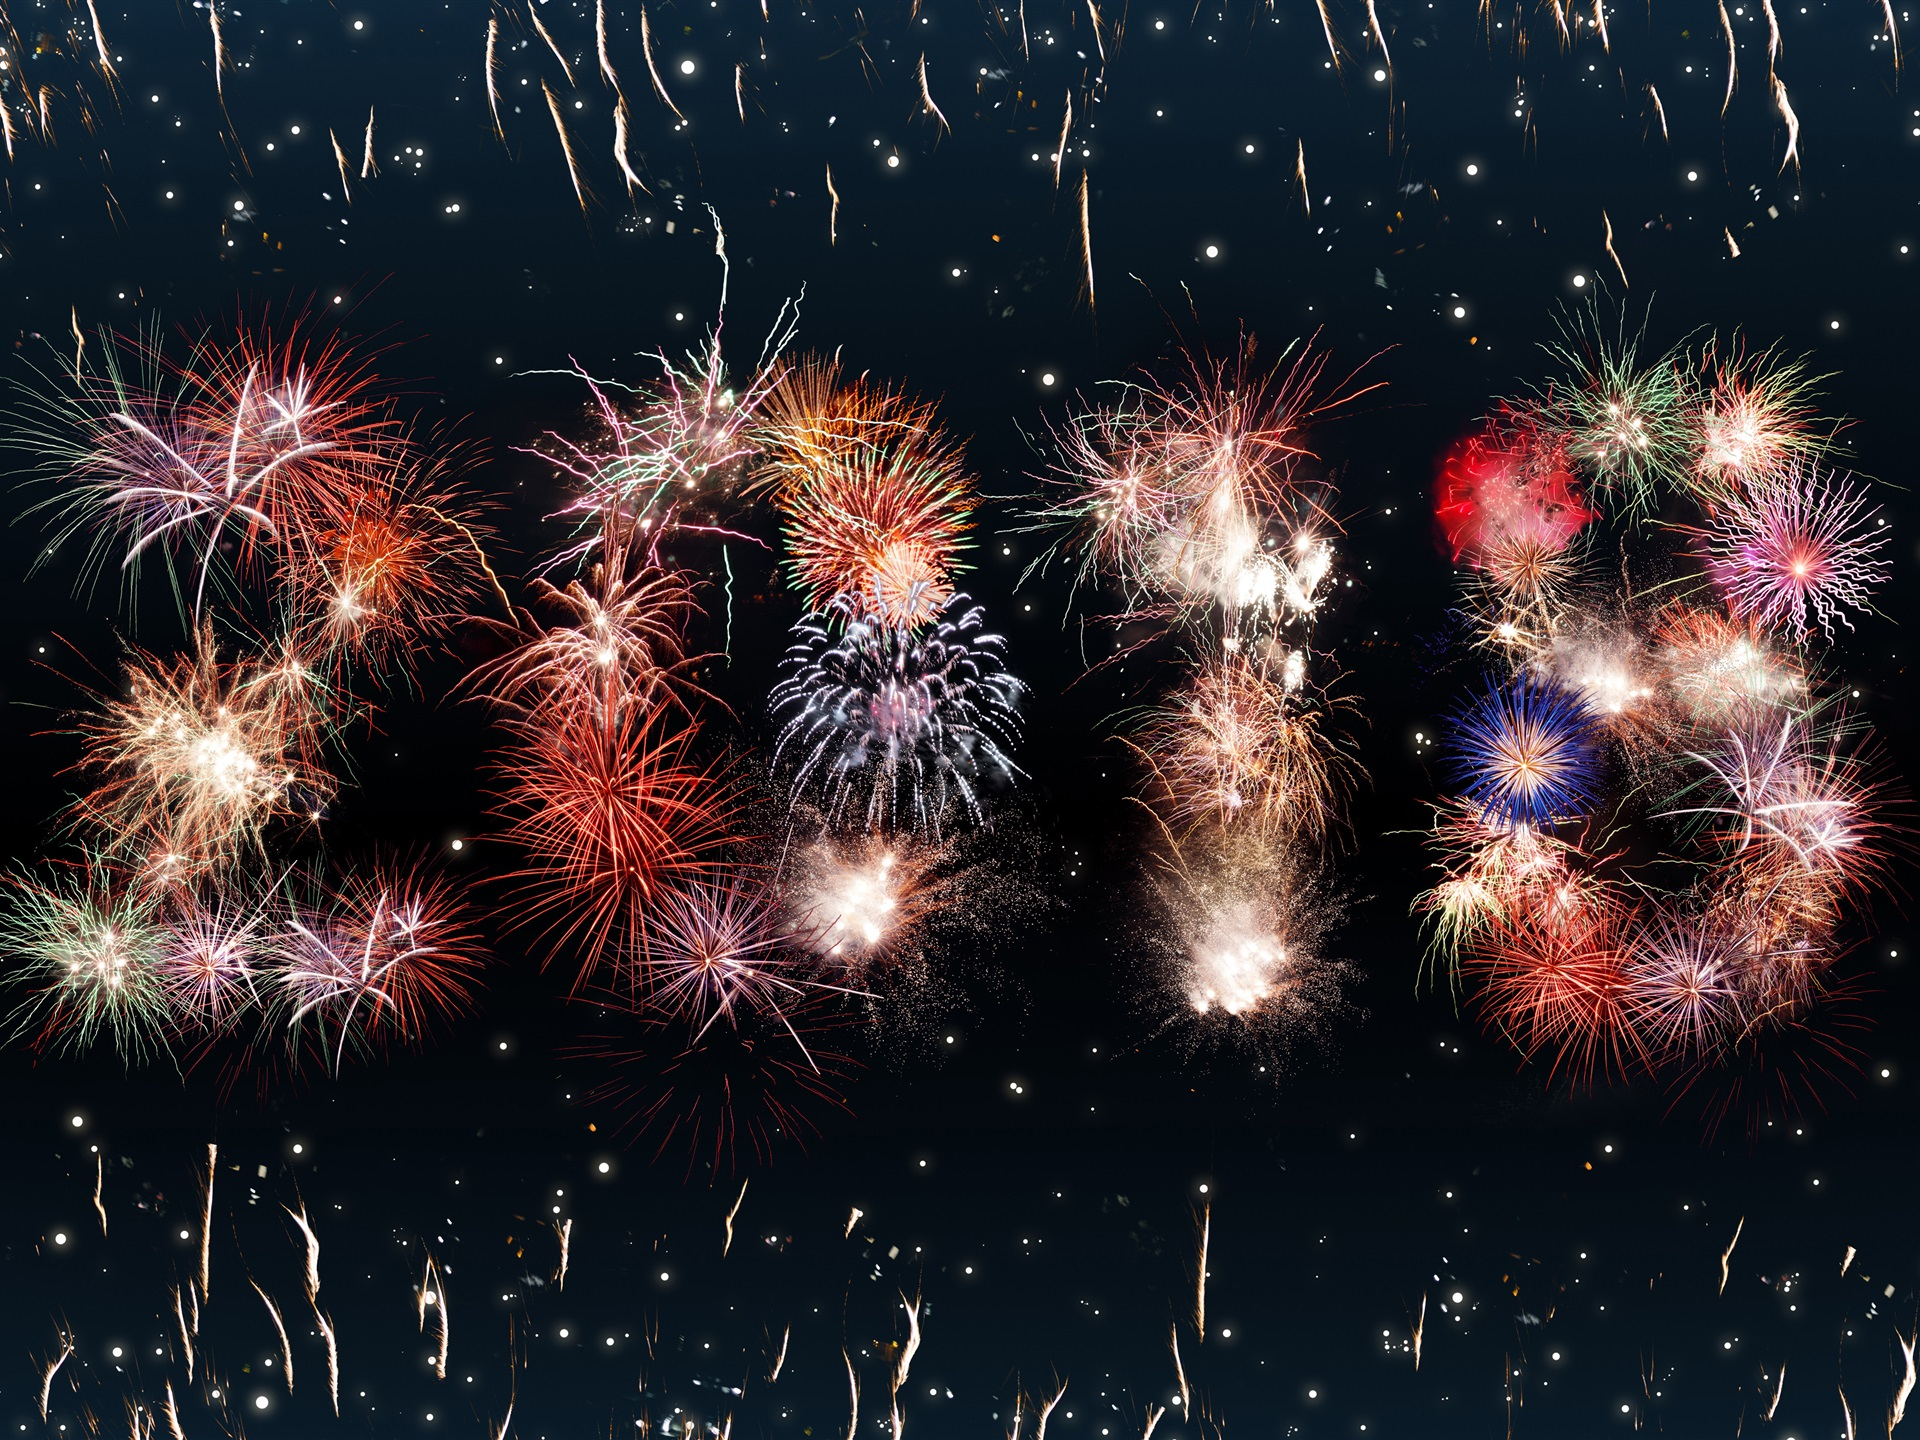 Wallpaper Happy New Year 2018, Beautiful Fireworks 3840x2160 UHD 4K  Picture, Image